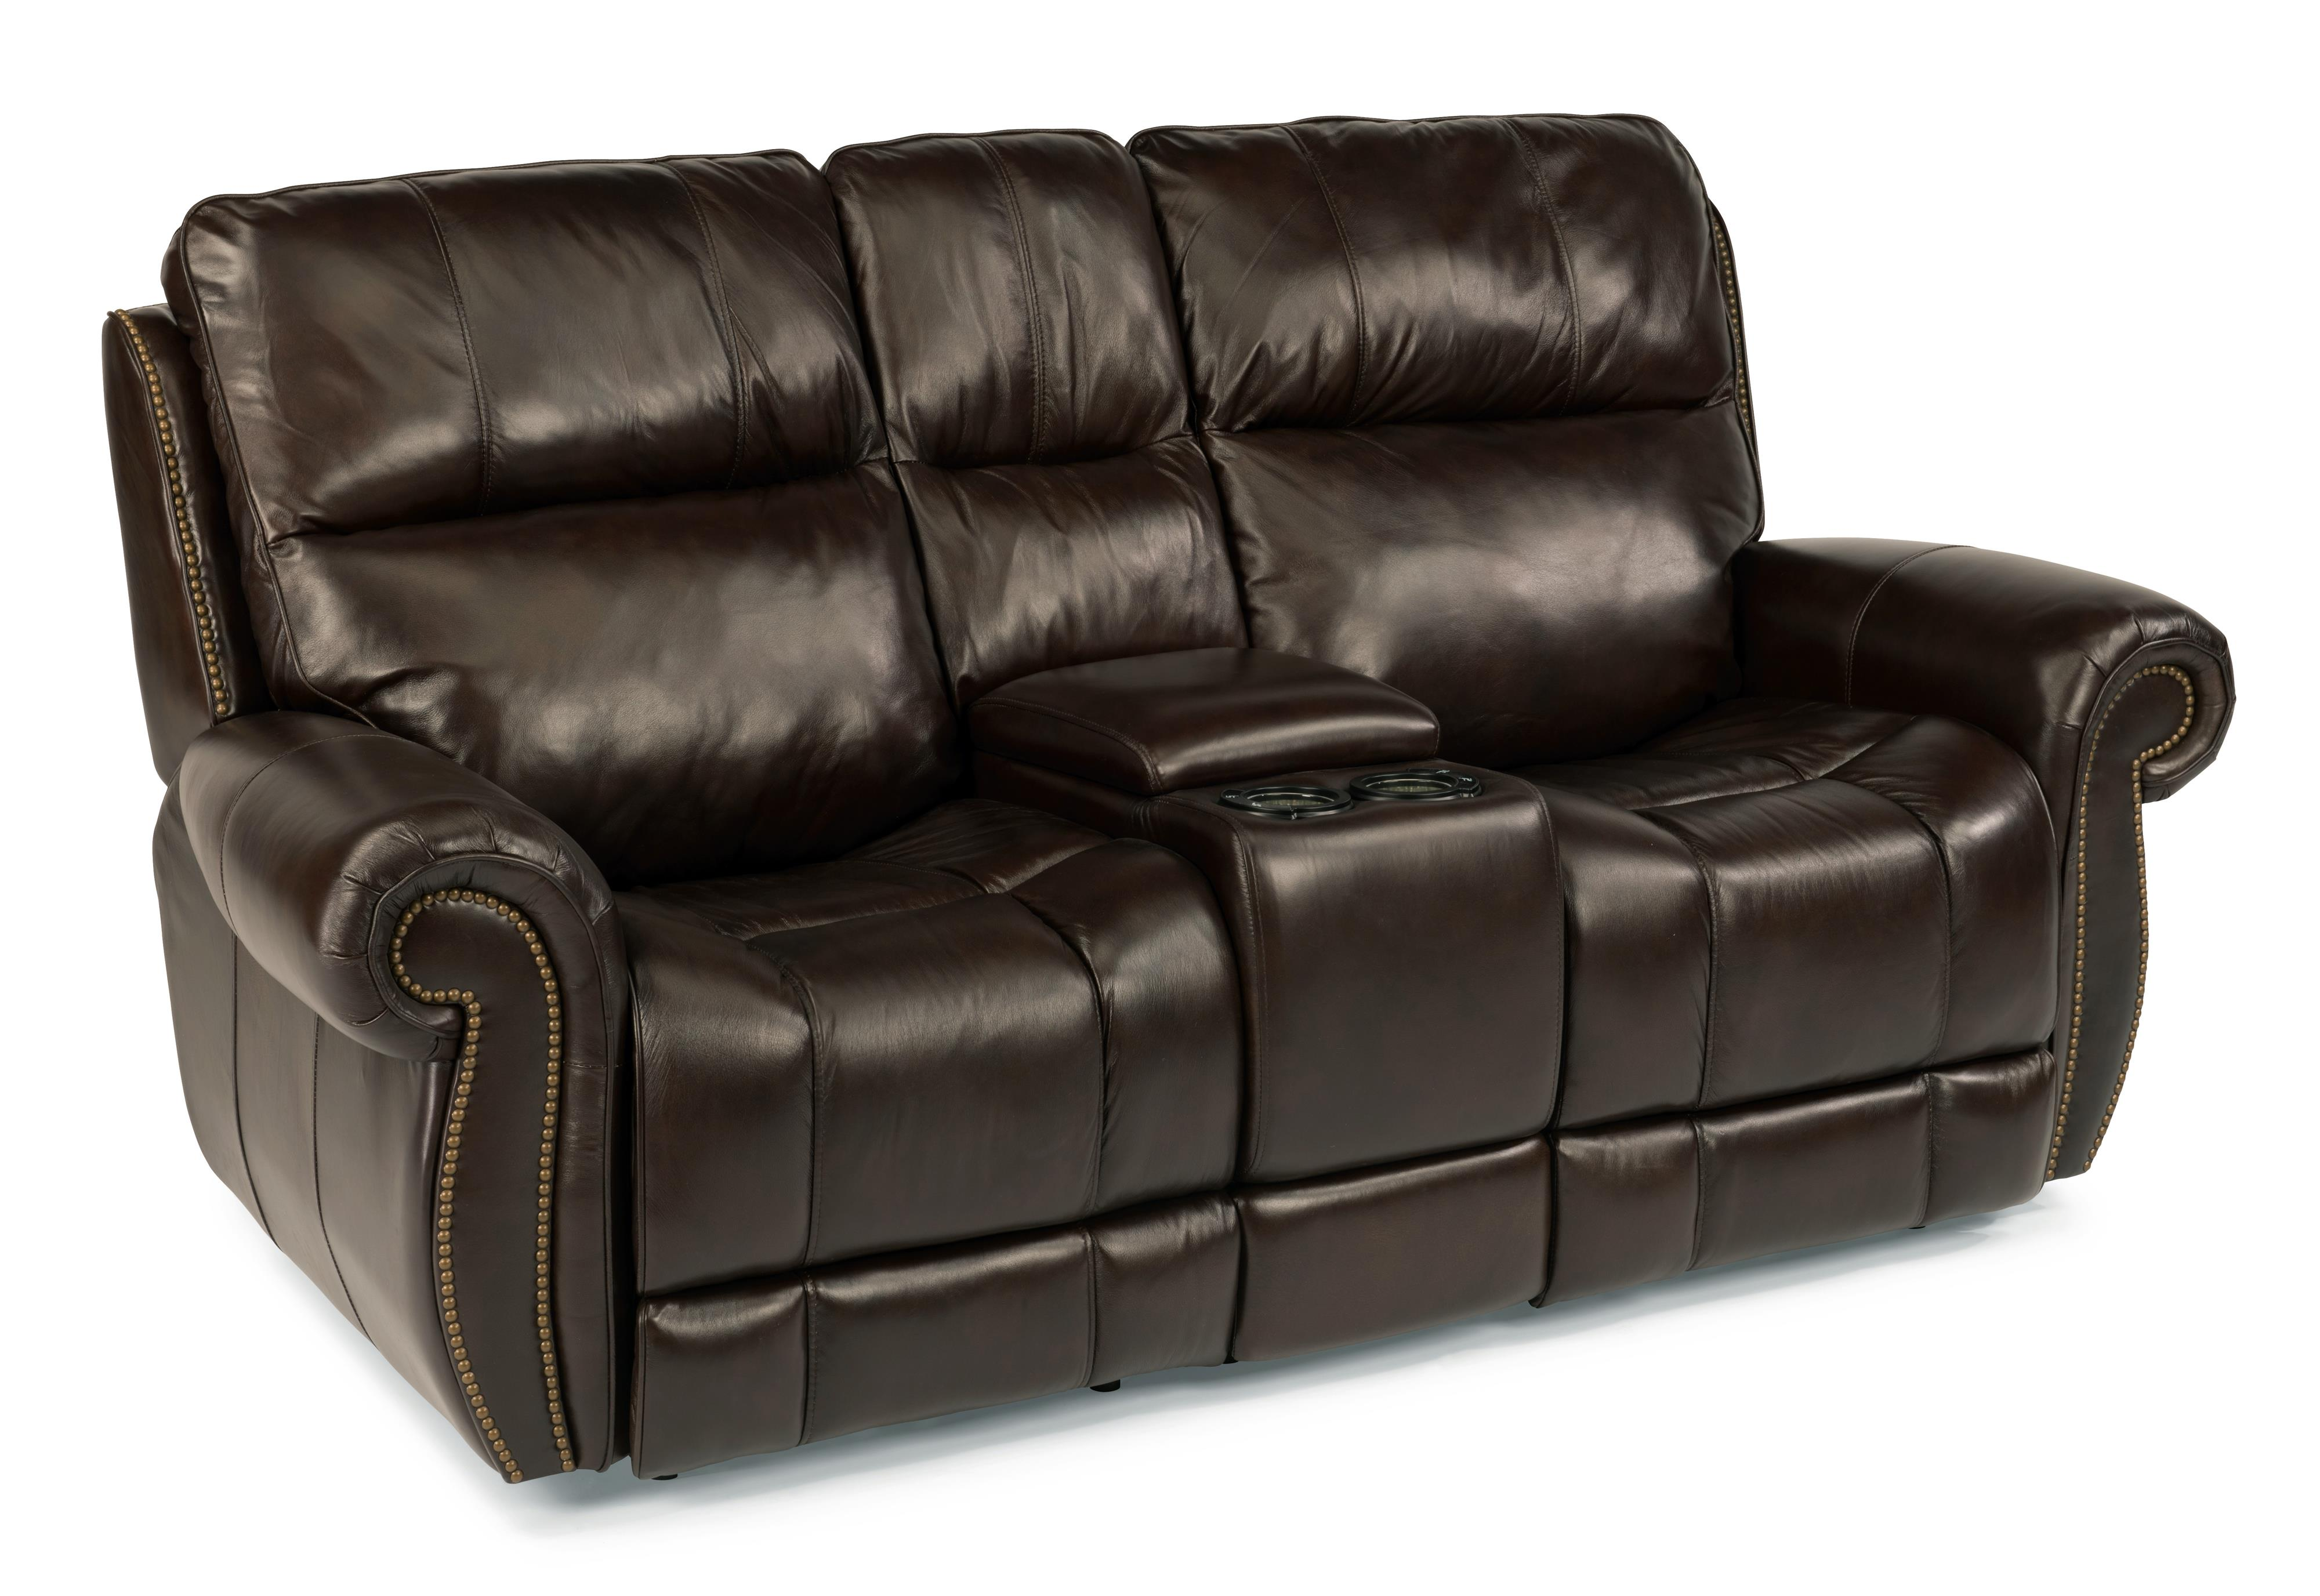 Flexsteel Latitudes - Maxwell Power Gliding Reclining Loveseat w/ Console - Item Number: 1603-604P-555-72